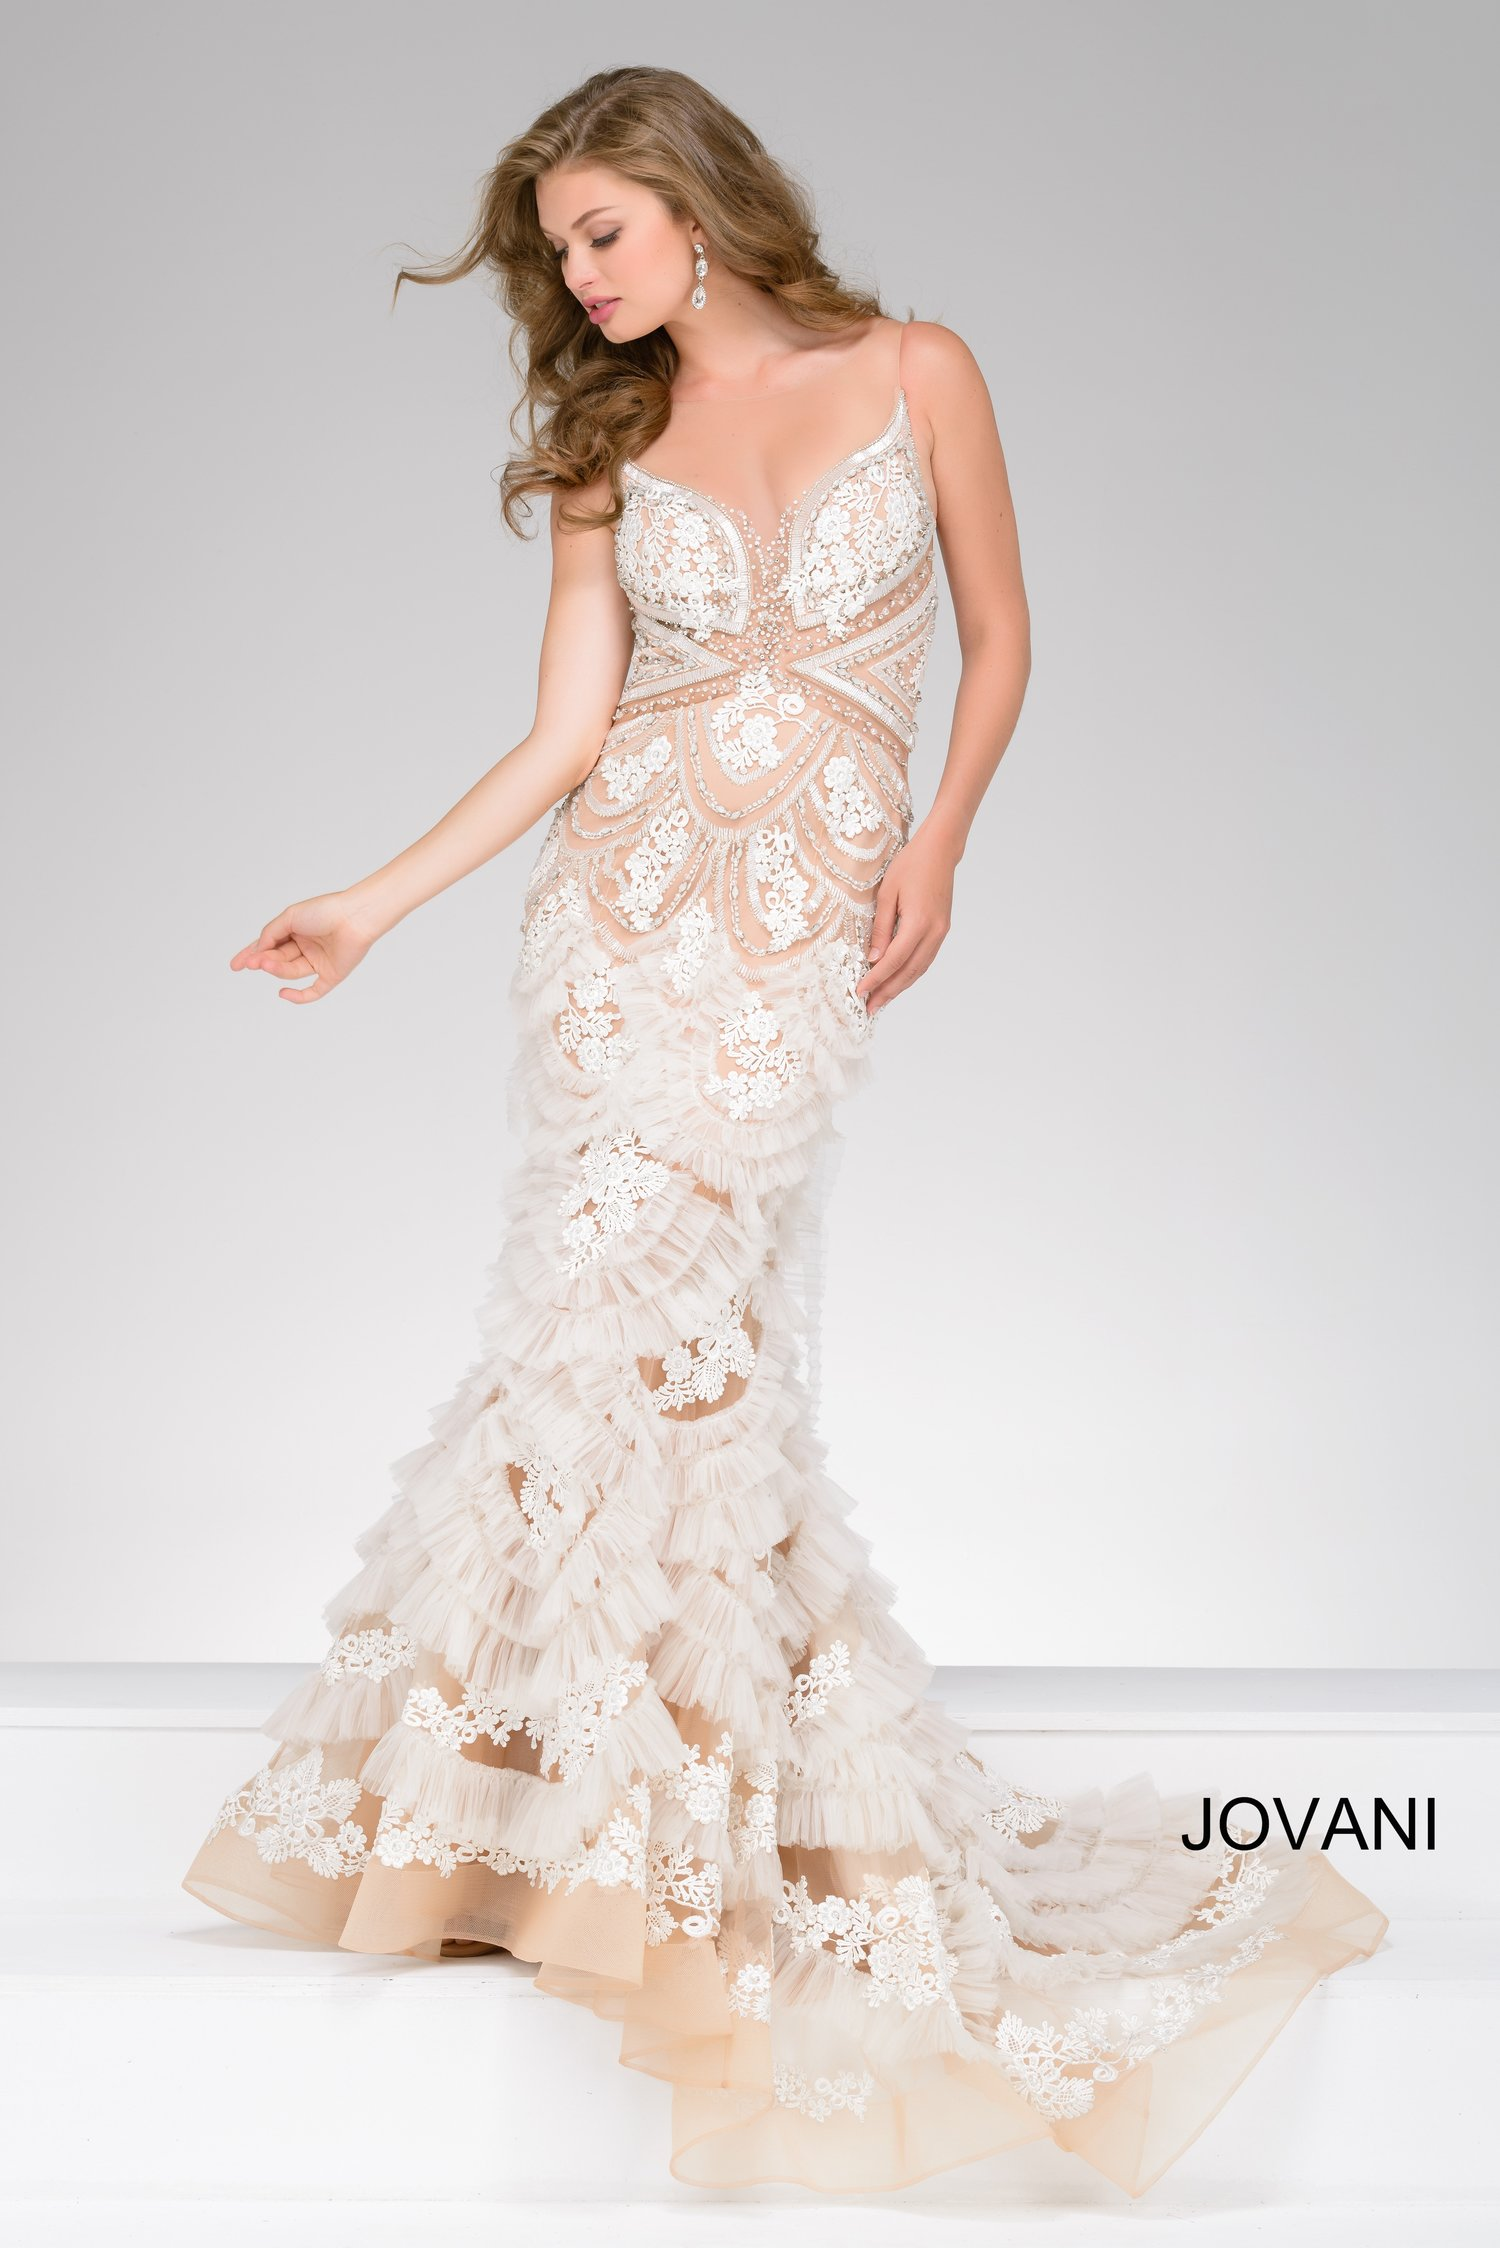 a545fb6f39a Jovani Wedding Dresses - Gomes Weine AG